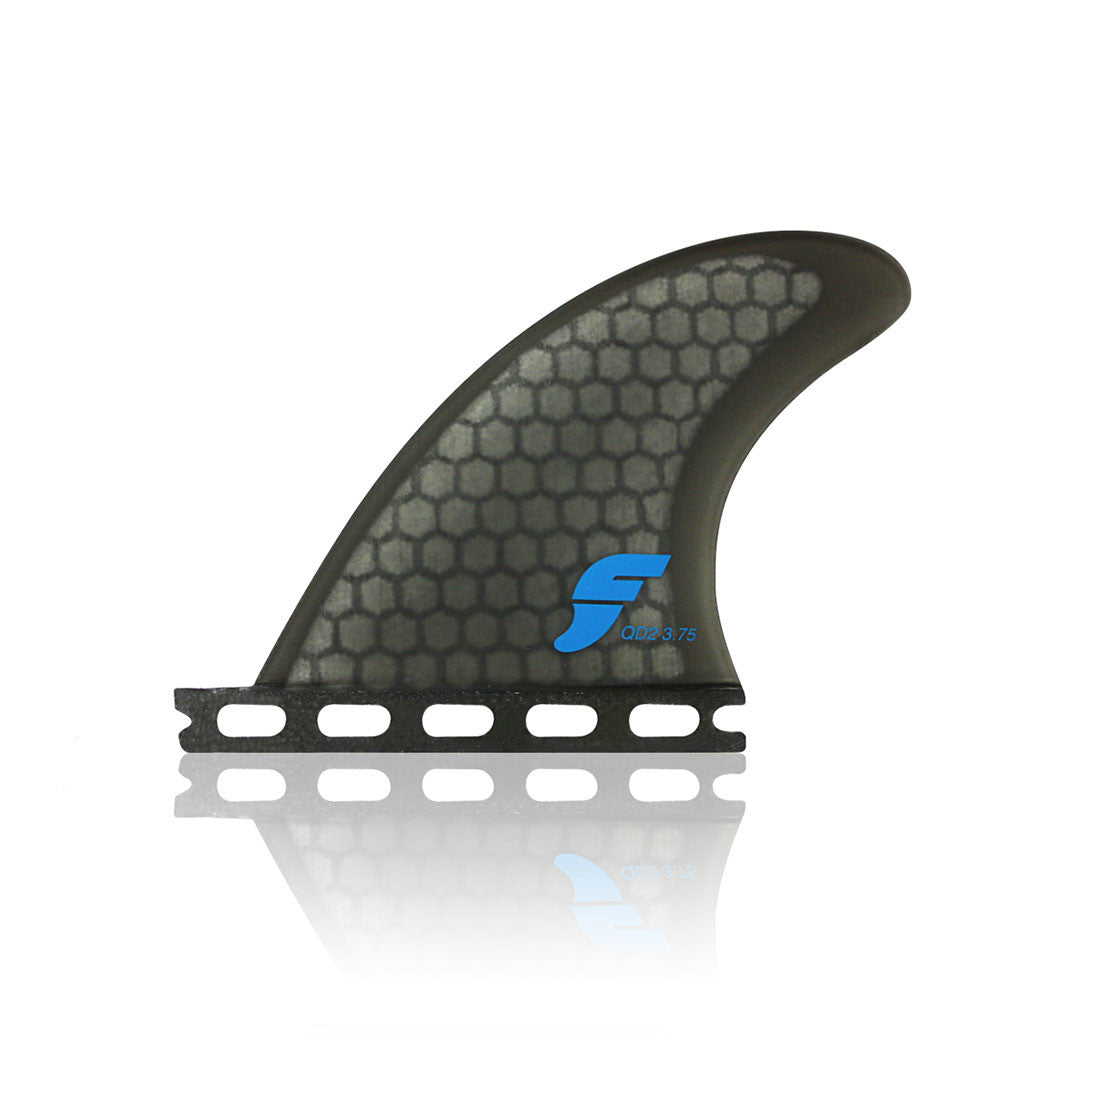 Futures Fins Honeycomb QD2 3.75 Quad Rear Set